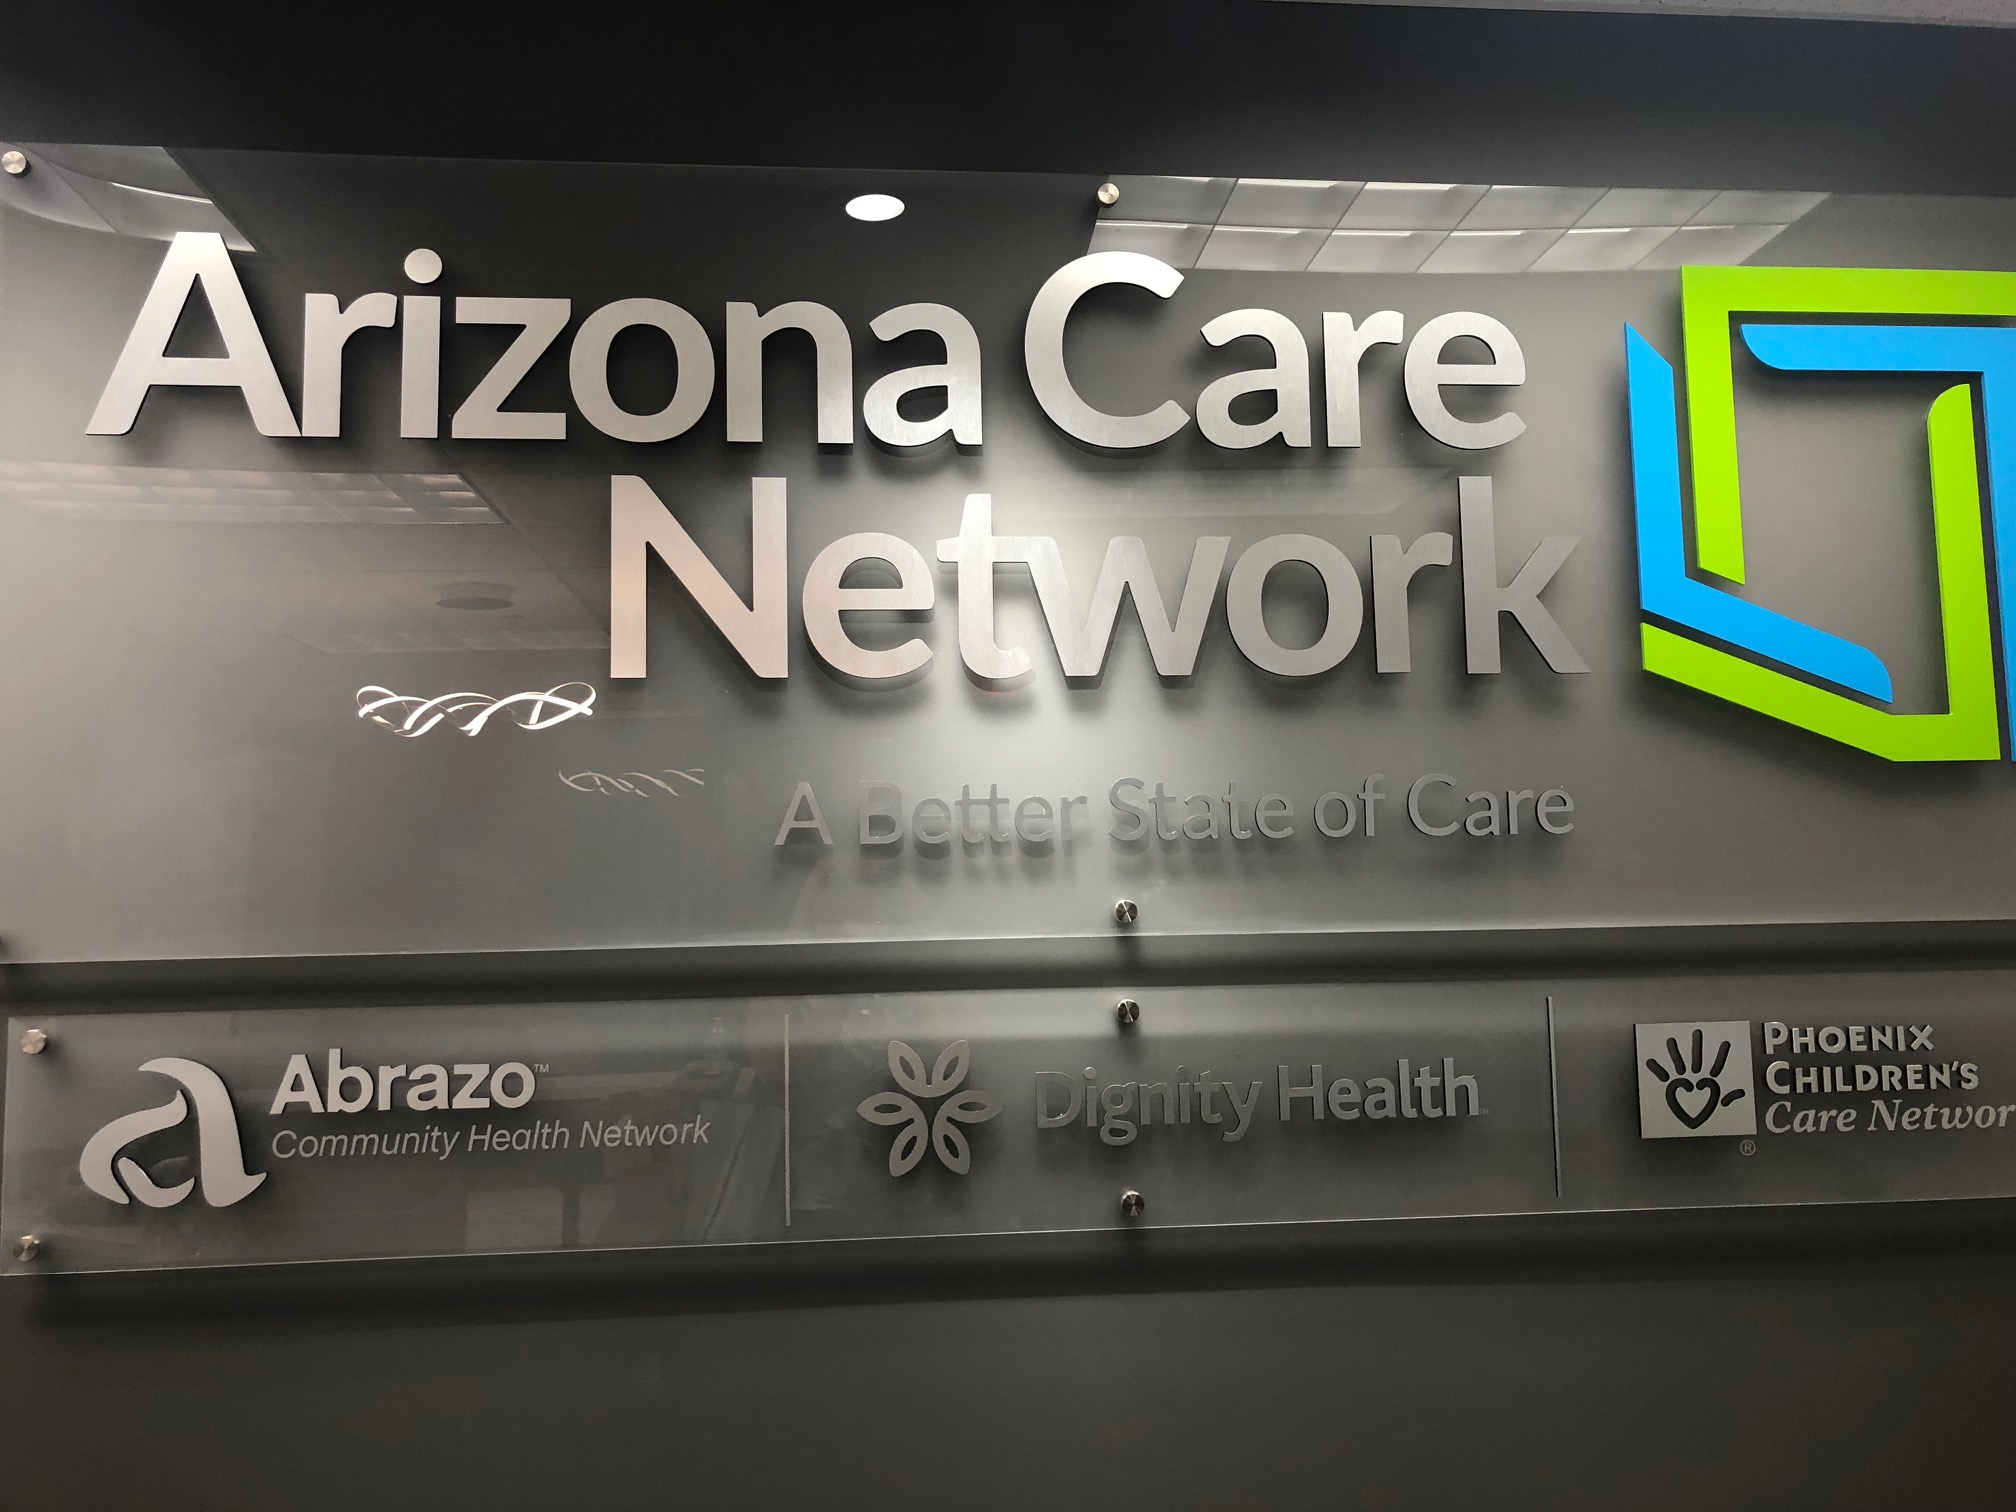 Arizona Care Network